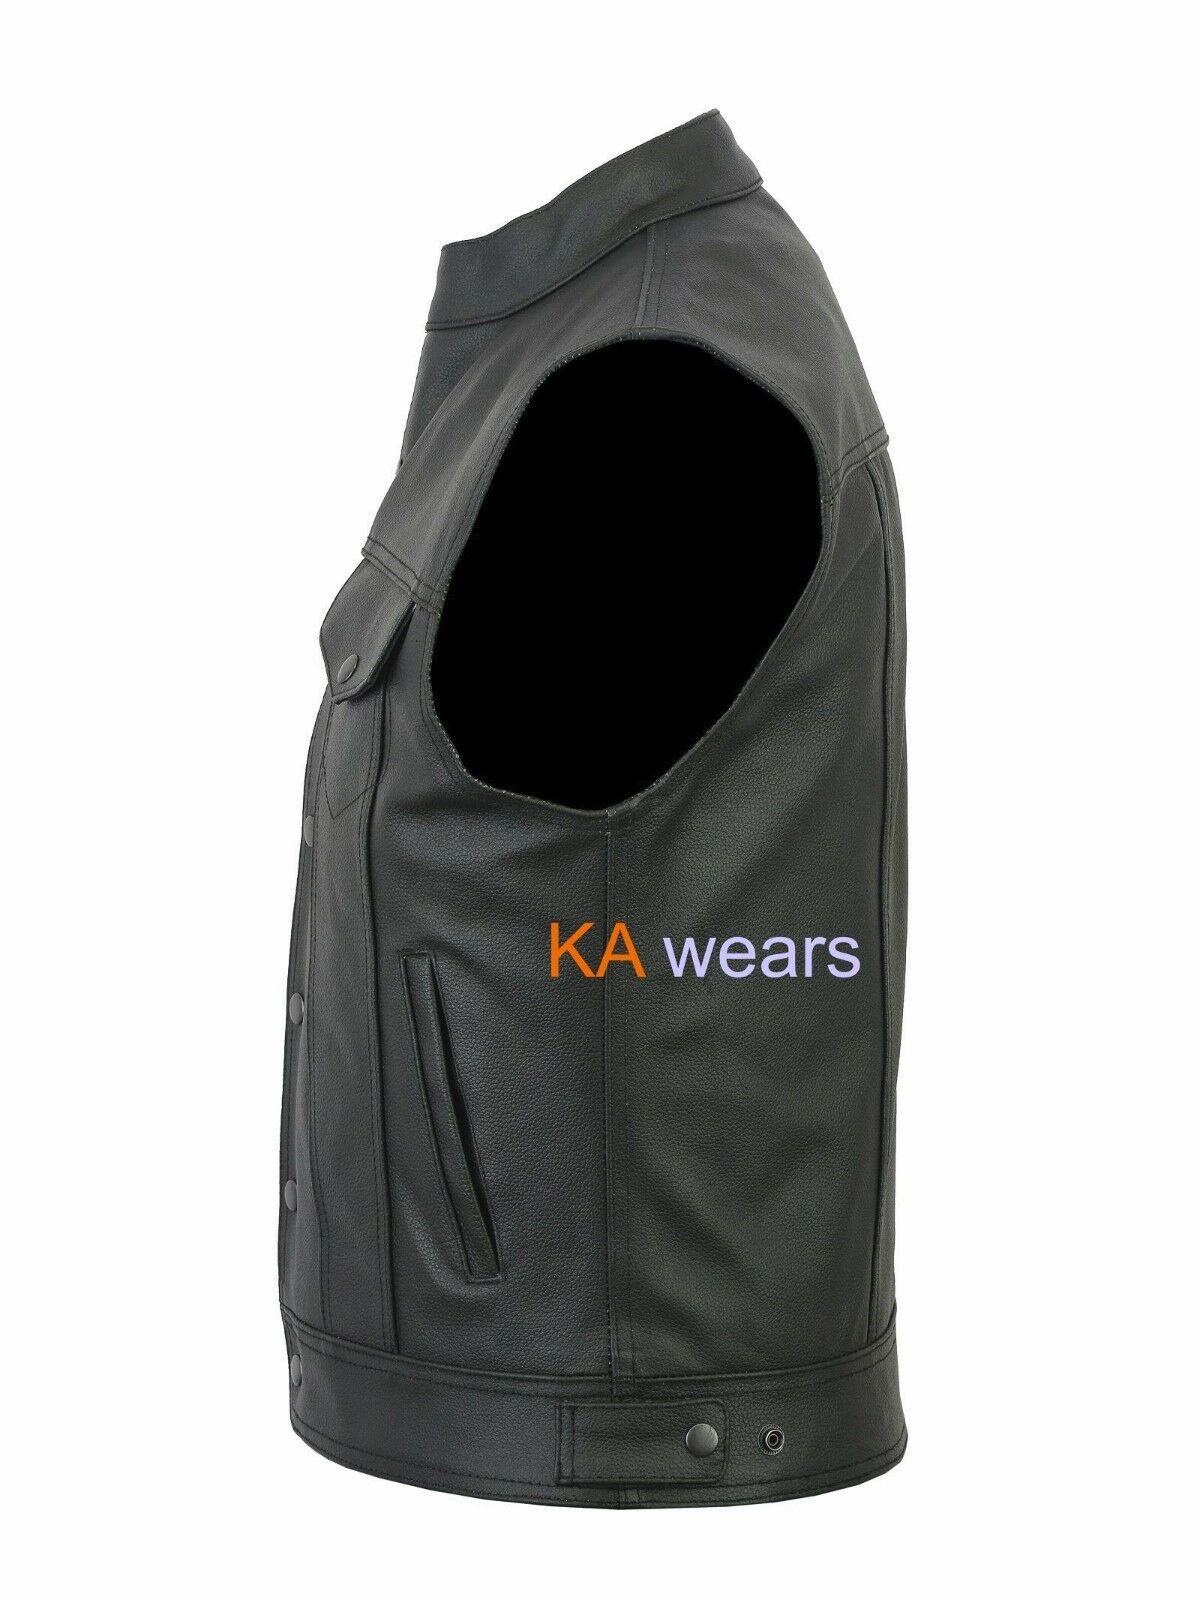 Our popular Equatorial Vest features 12 pockets. Large pockets will even accommodate binoculars, iPad, books, and magazines! The vest is perfect for traveling when you want to load up the pockets with items you don't have space to fit in your one carry-on bag.